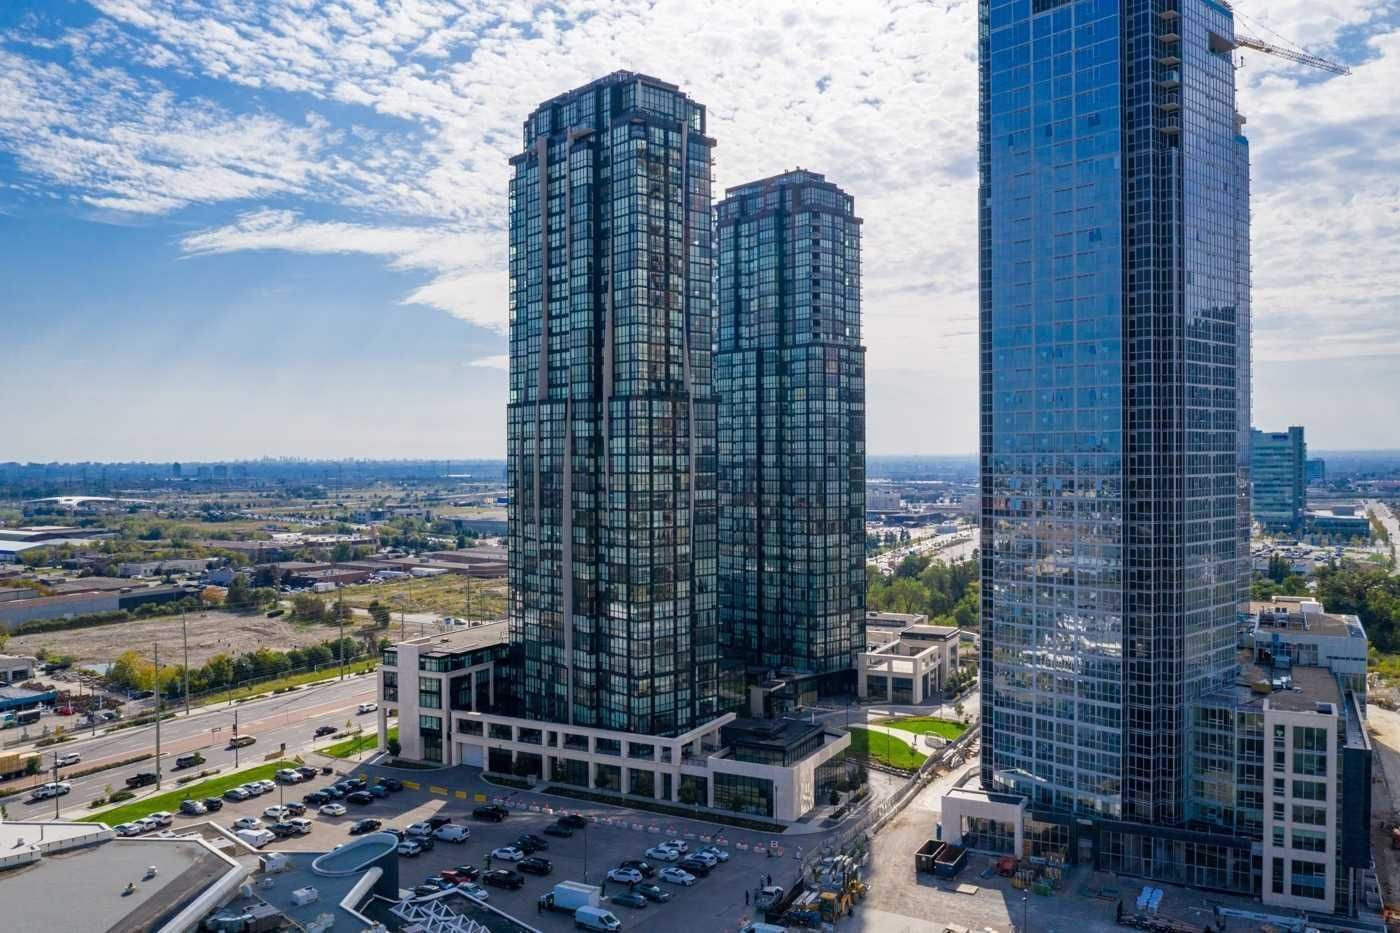 2900 Highway 7 Rd, unit 3104 for rent in Toronto - image #1